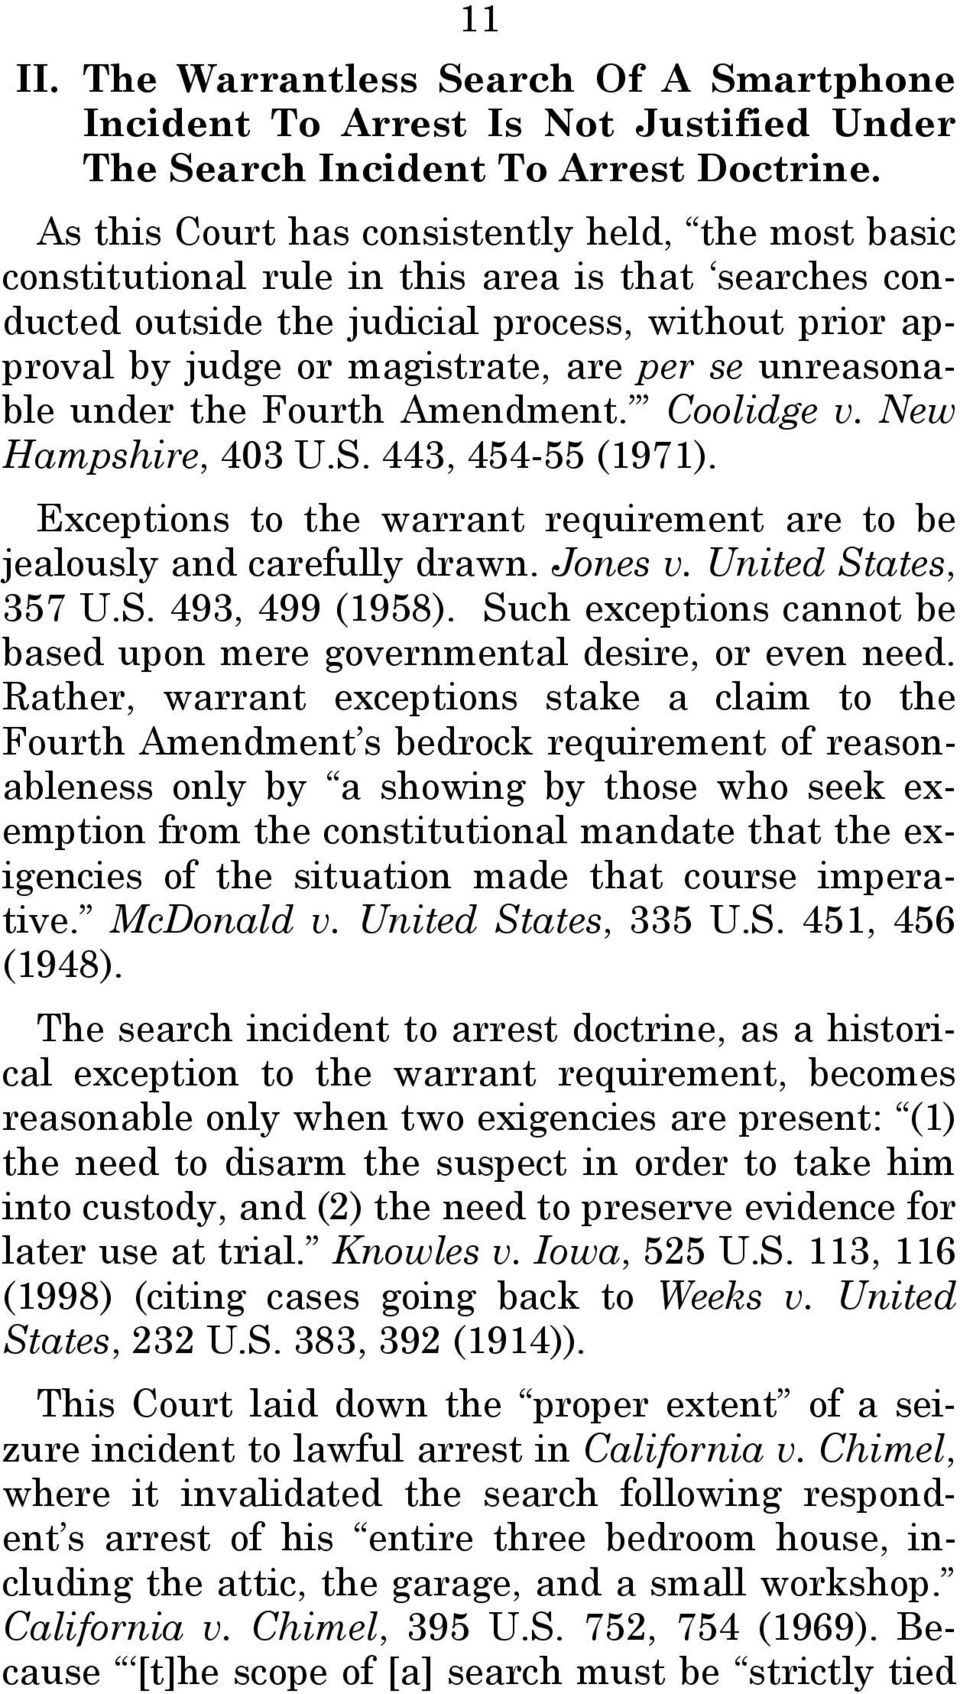 unreasonable under the Fourth Amendment. Coolidge v. New Hampshire, 403 U.S. 443, 454-55 (1971). Exceptions to the warrant requirement are to be jealously and carefully drawn. Jones v.